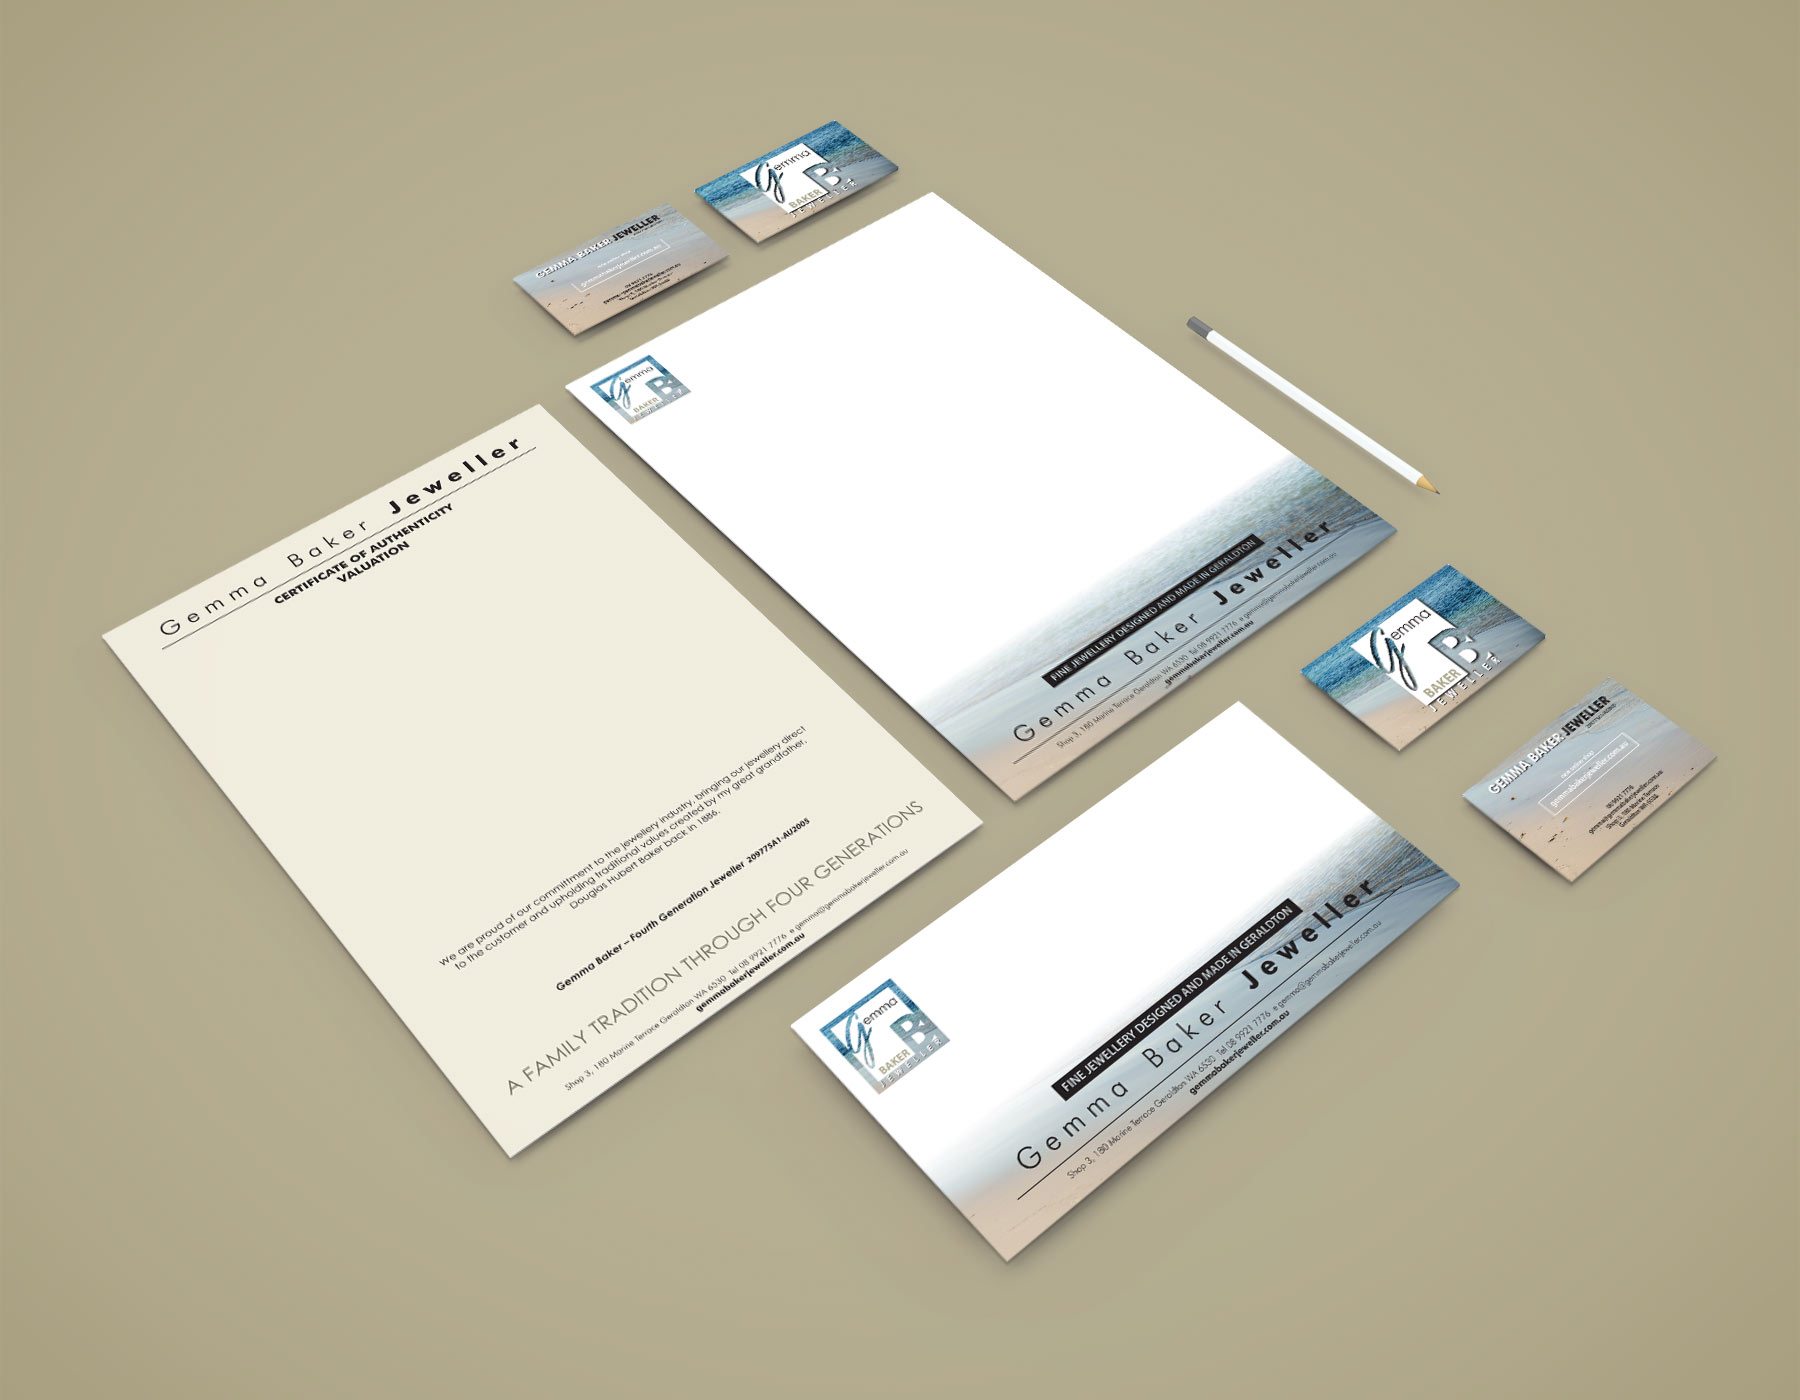 GBJ stationery graphic design